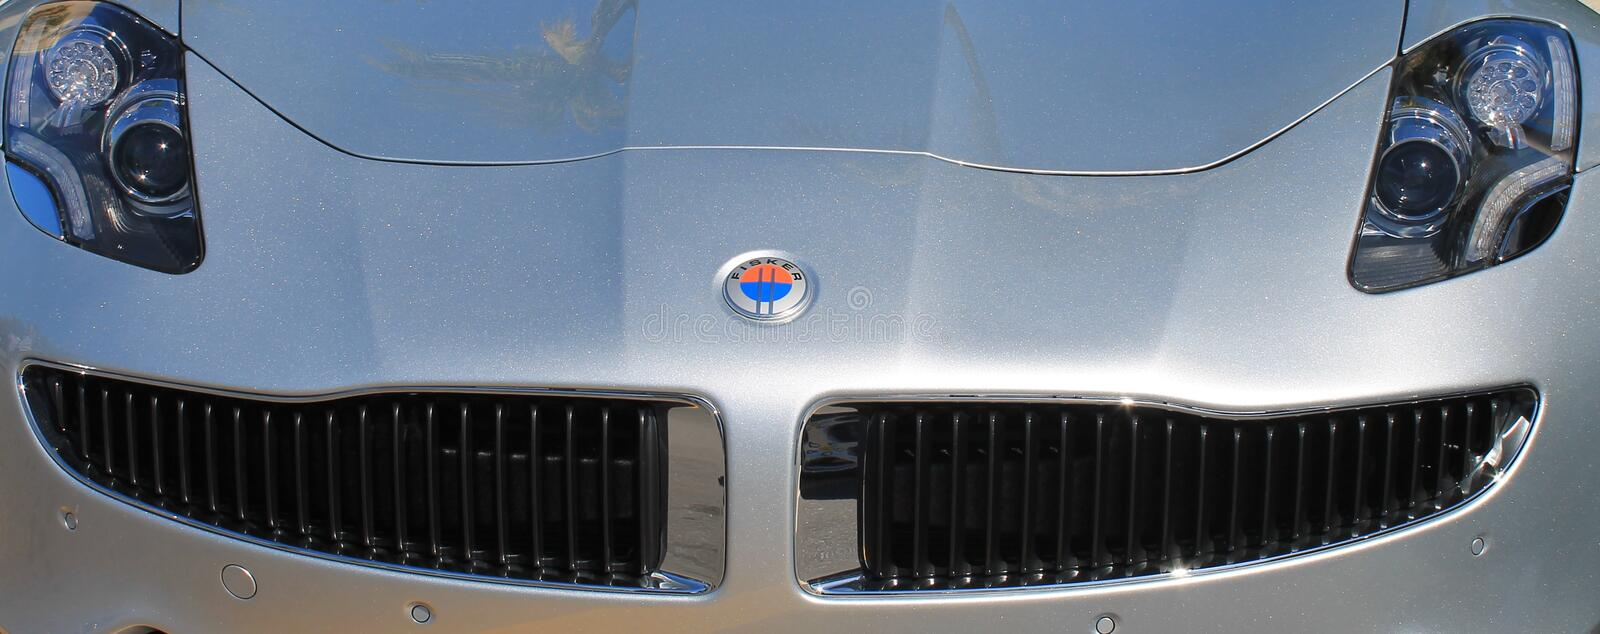 American supercar headlamps and grille stock images